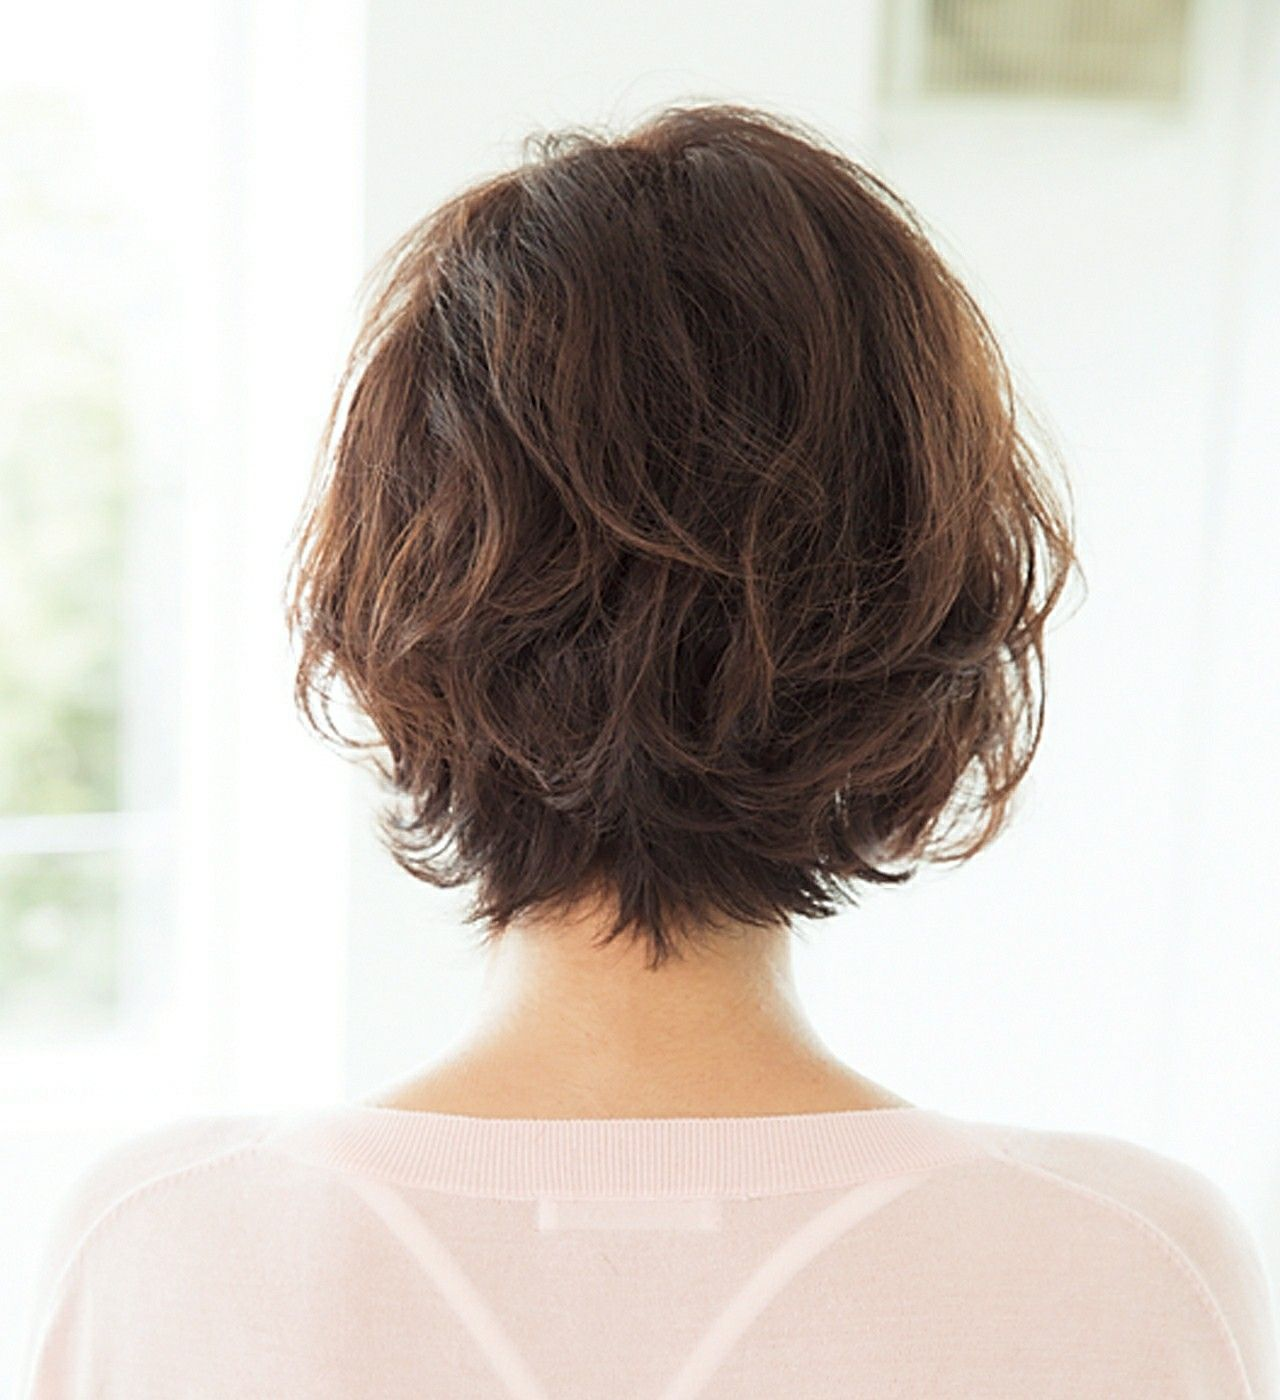 Pin By Fernanda Santos On ヘアスタイル Short Hair With Layers